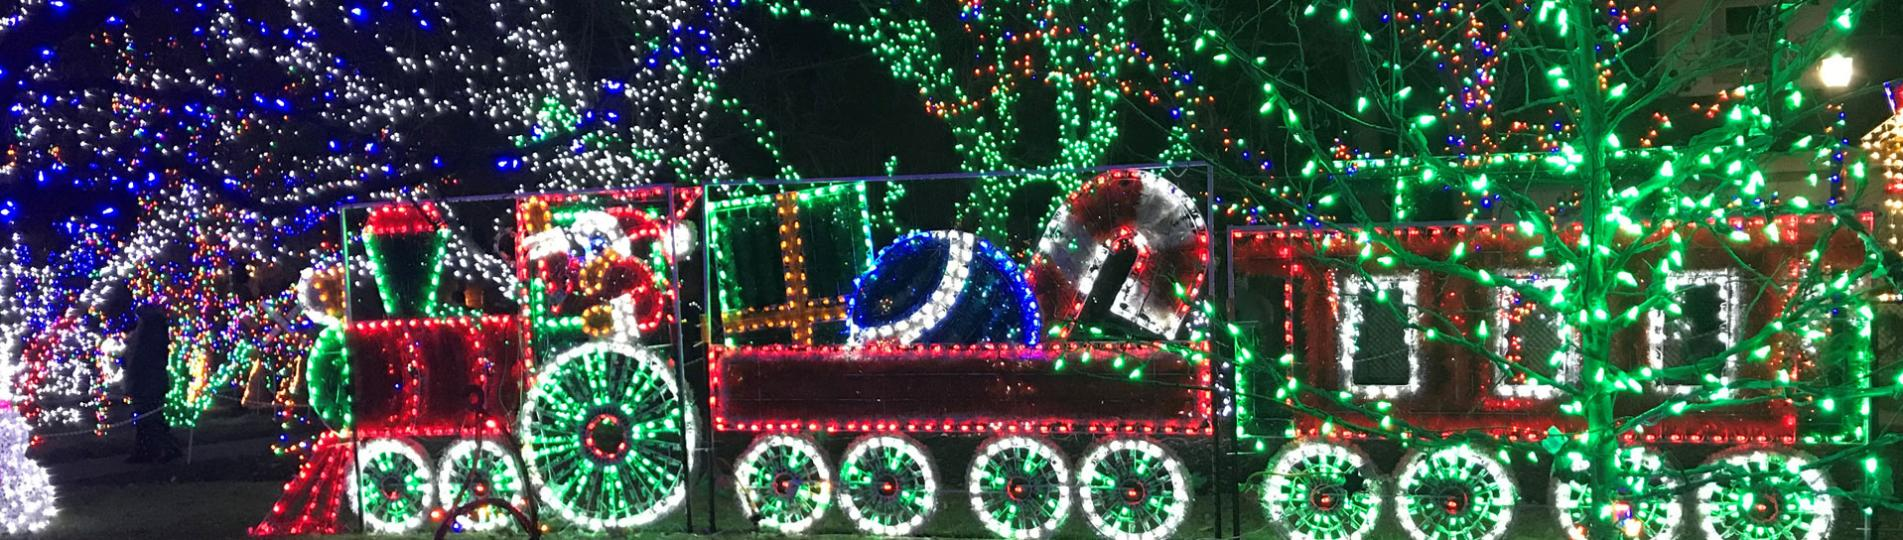 Top Free Things to Do This Holiday Season in DuPage County